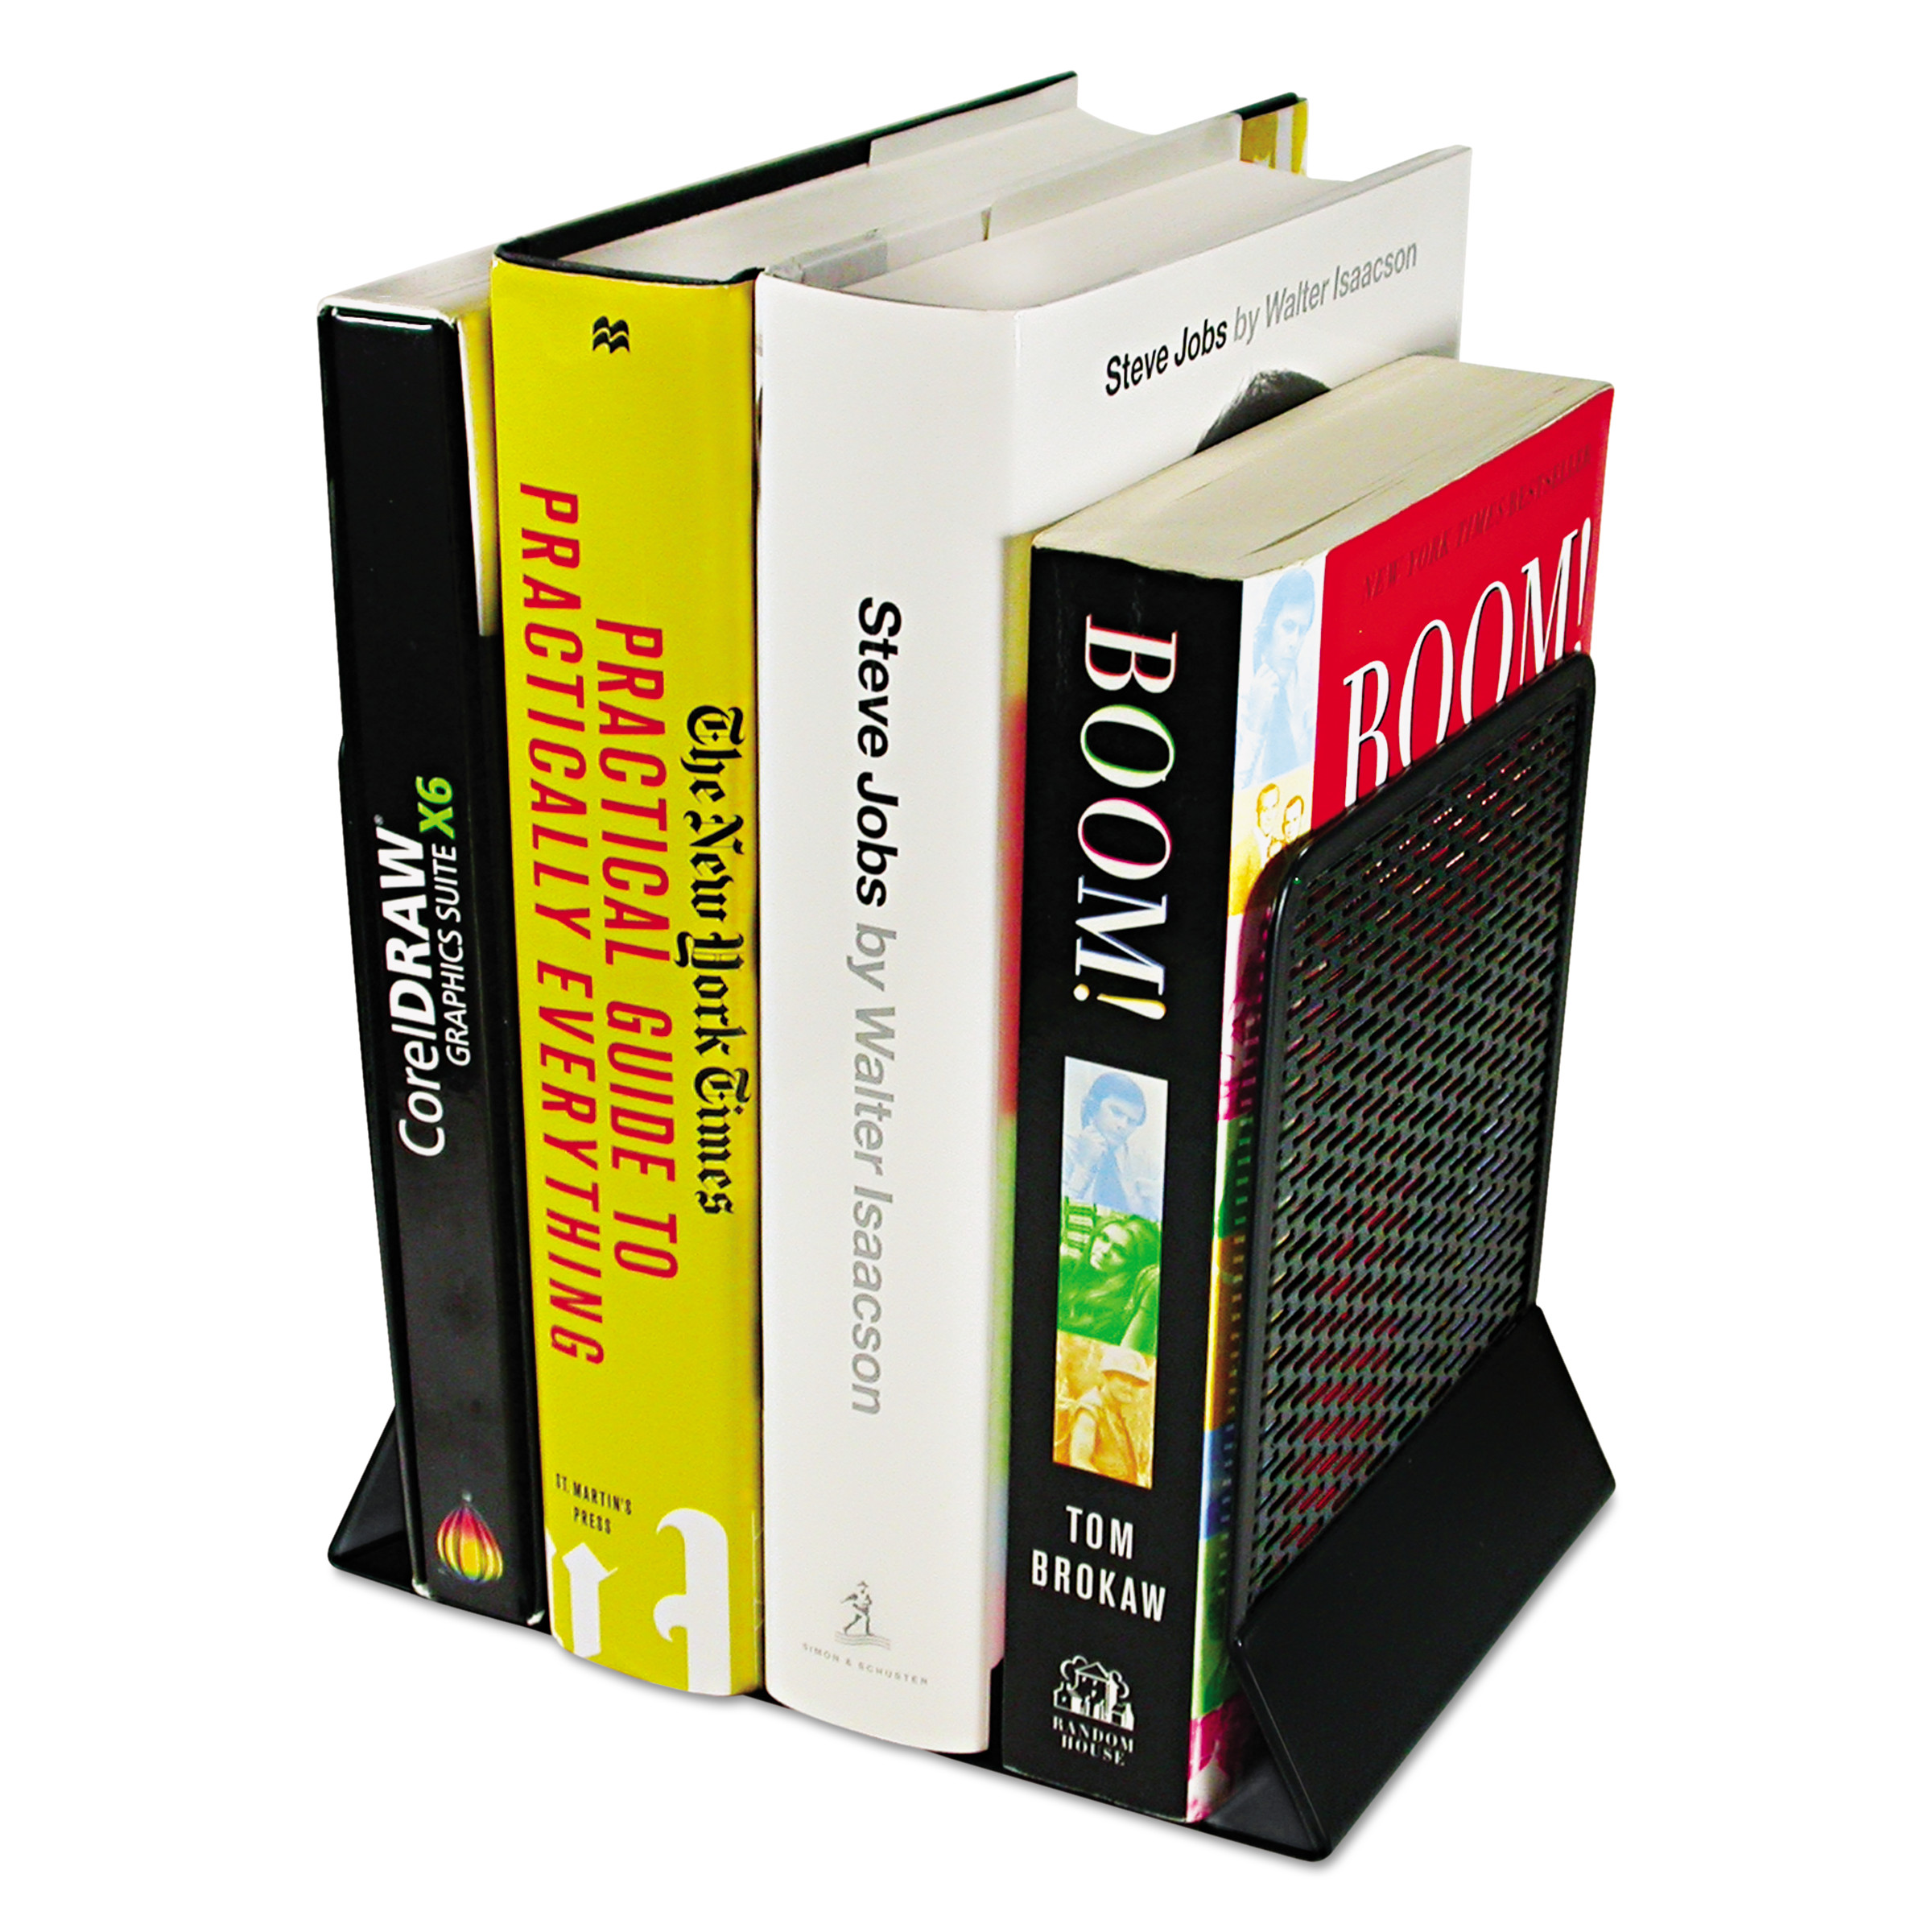 Artistic Urban Collection Punched Metal Bookends, 6 1/2 x 6 1/2 x 5 1/2, Black -AOPART20008